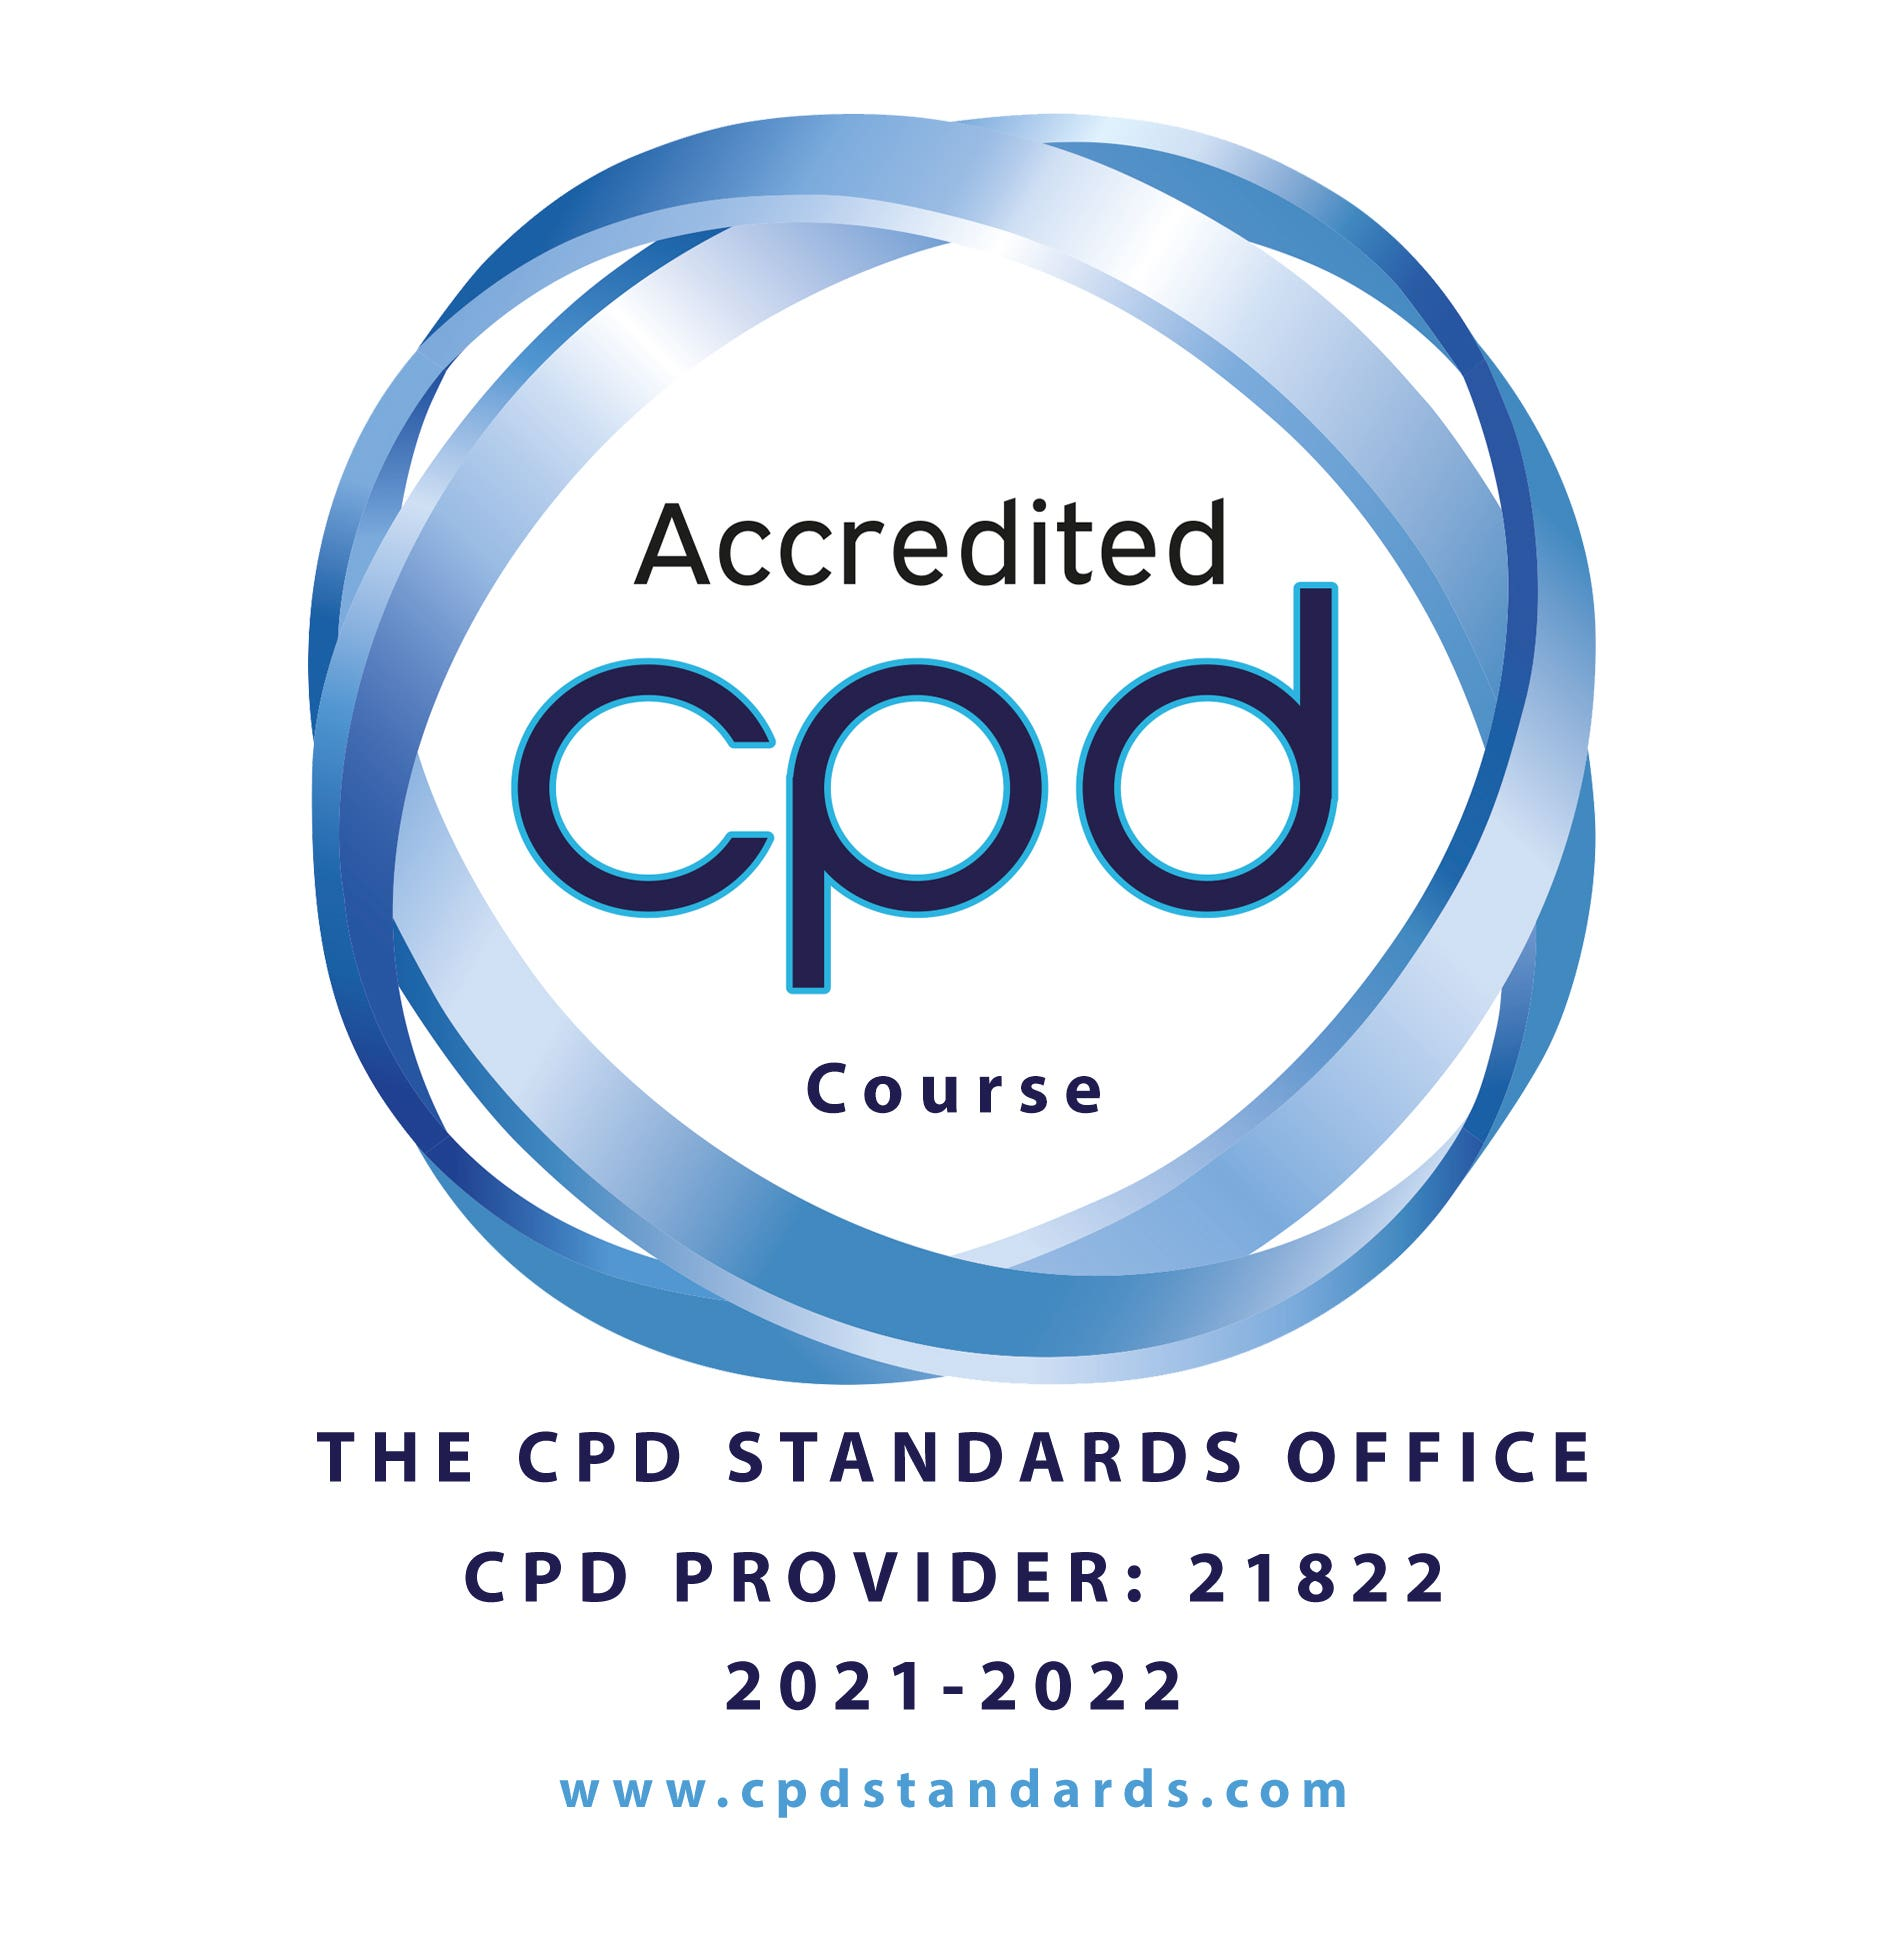 Accredited 3 hour CPD course